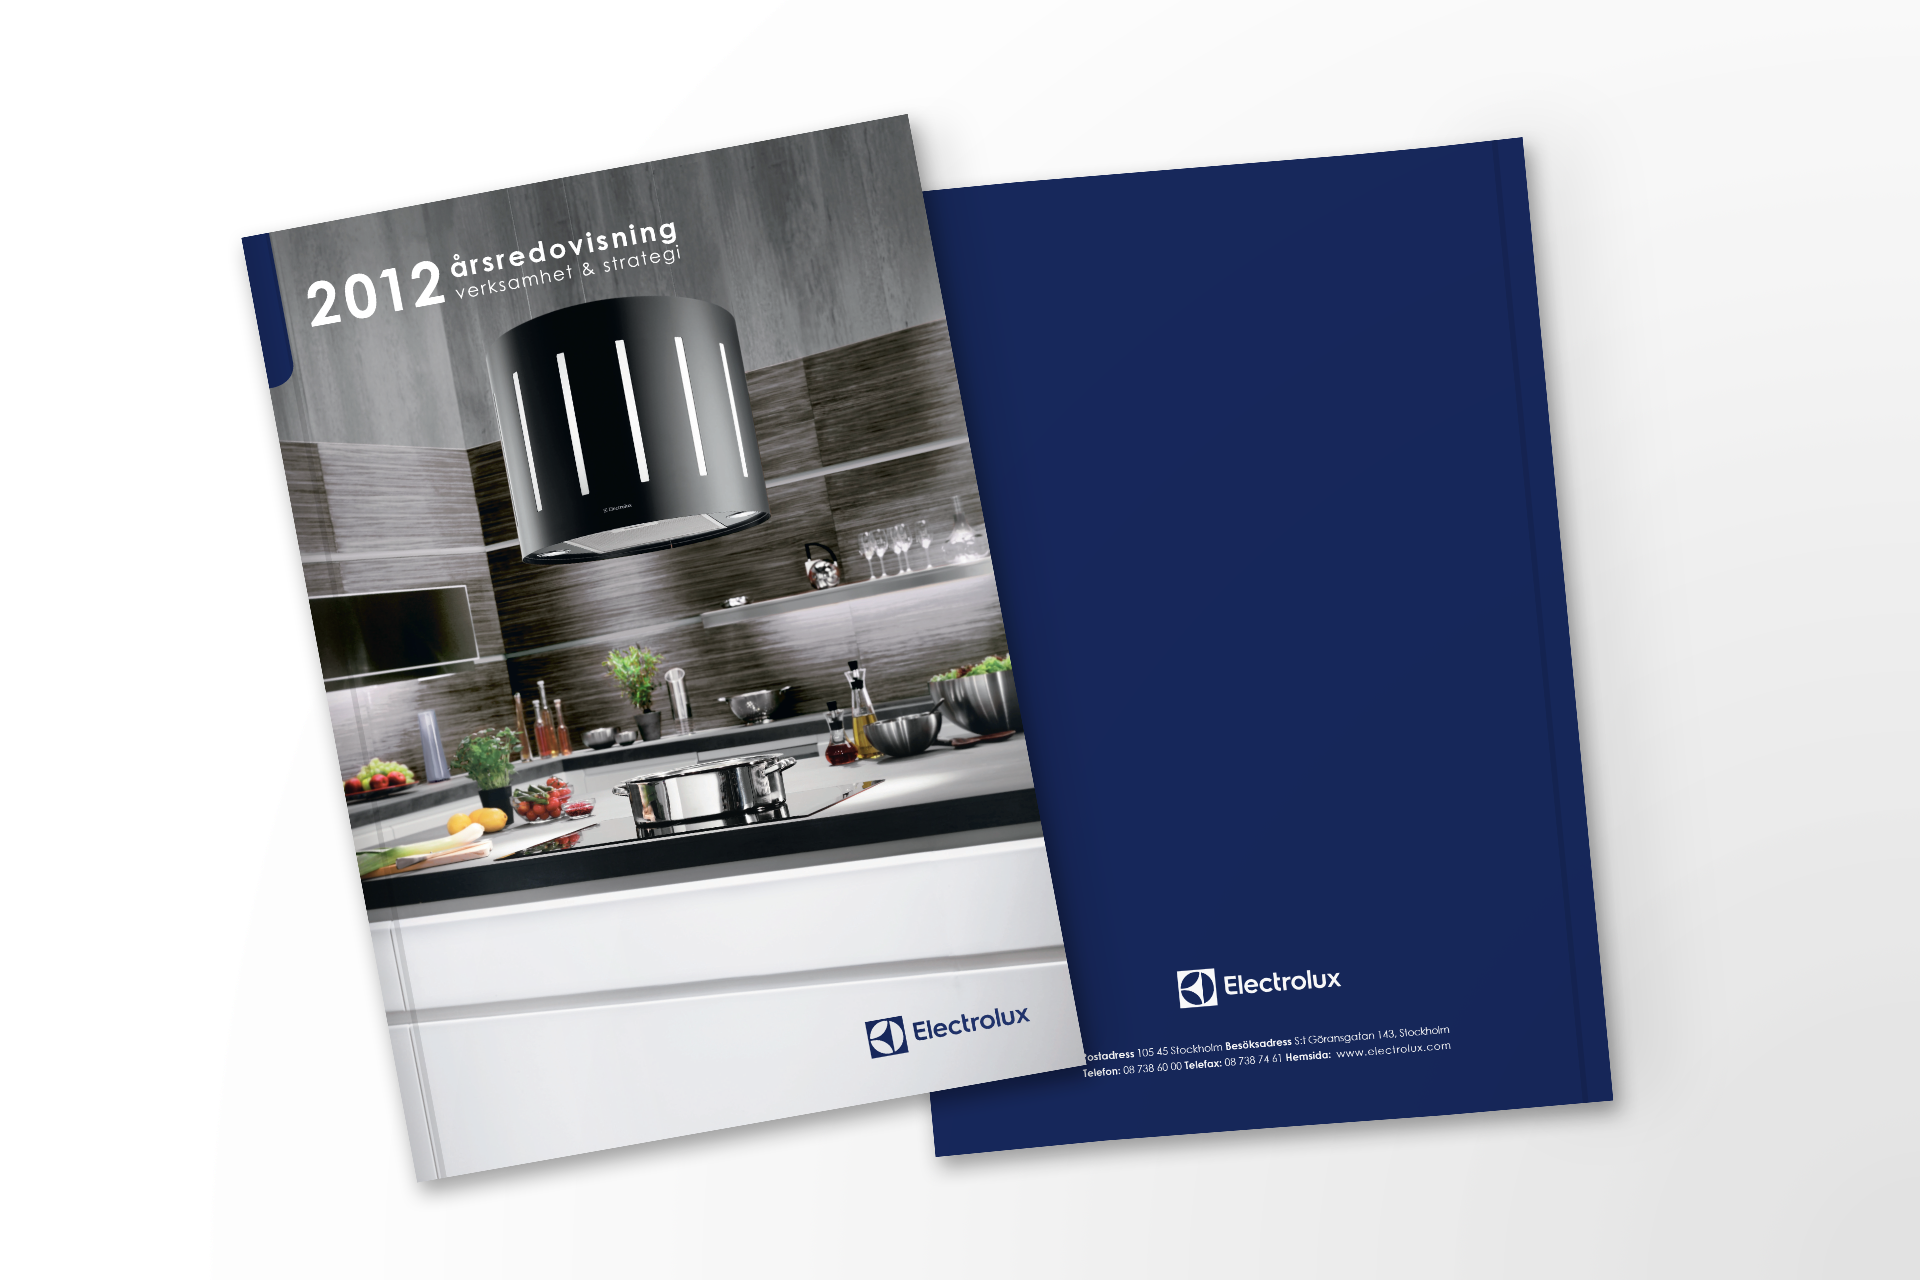 electrolux_cover